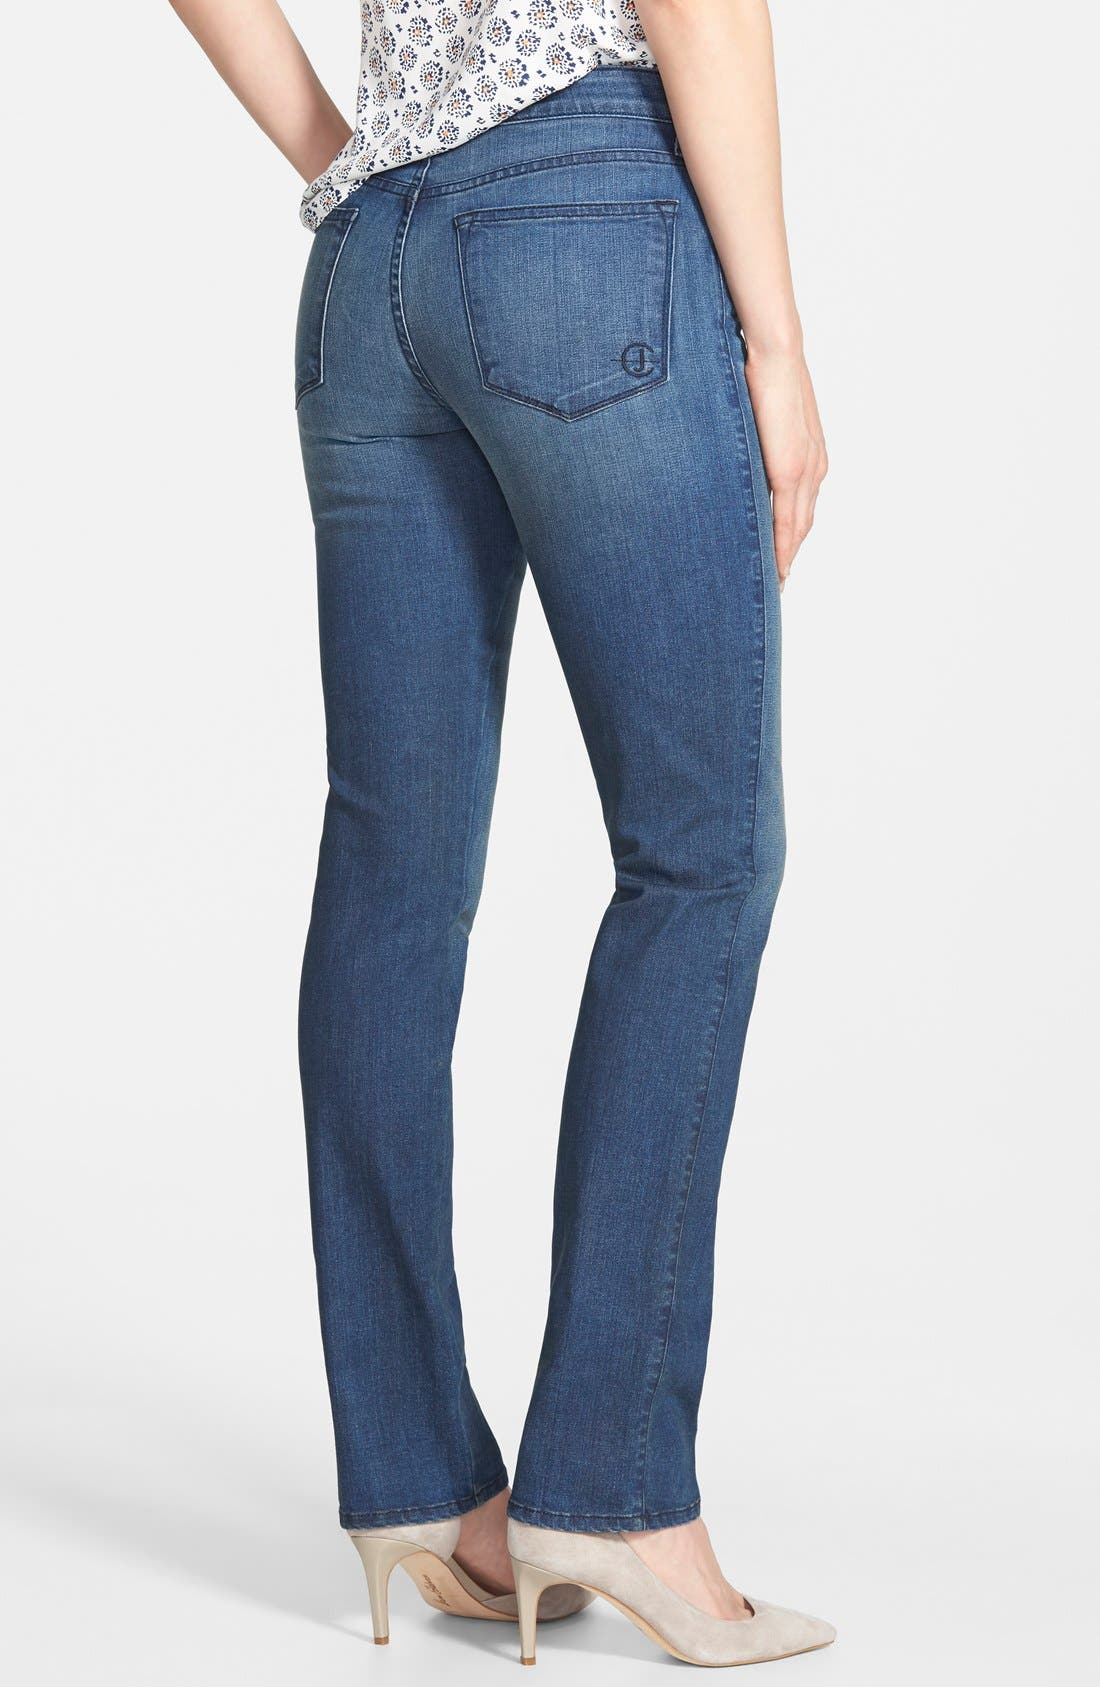 Alternate Image 2  - CJ by Cookie Johnson 'Faith' Stretch Straight Leg Jeans (Dyson) (Online Only)